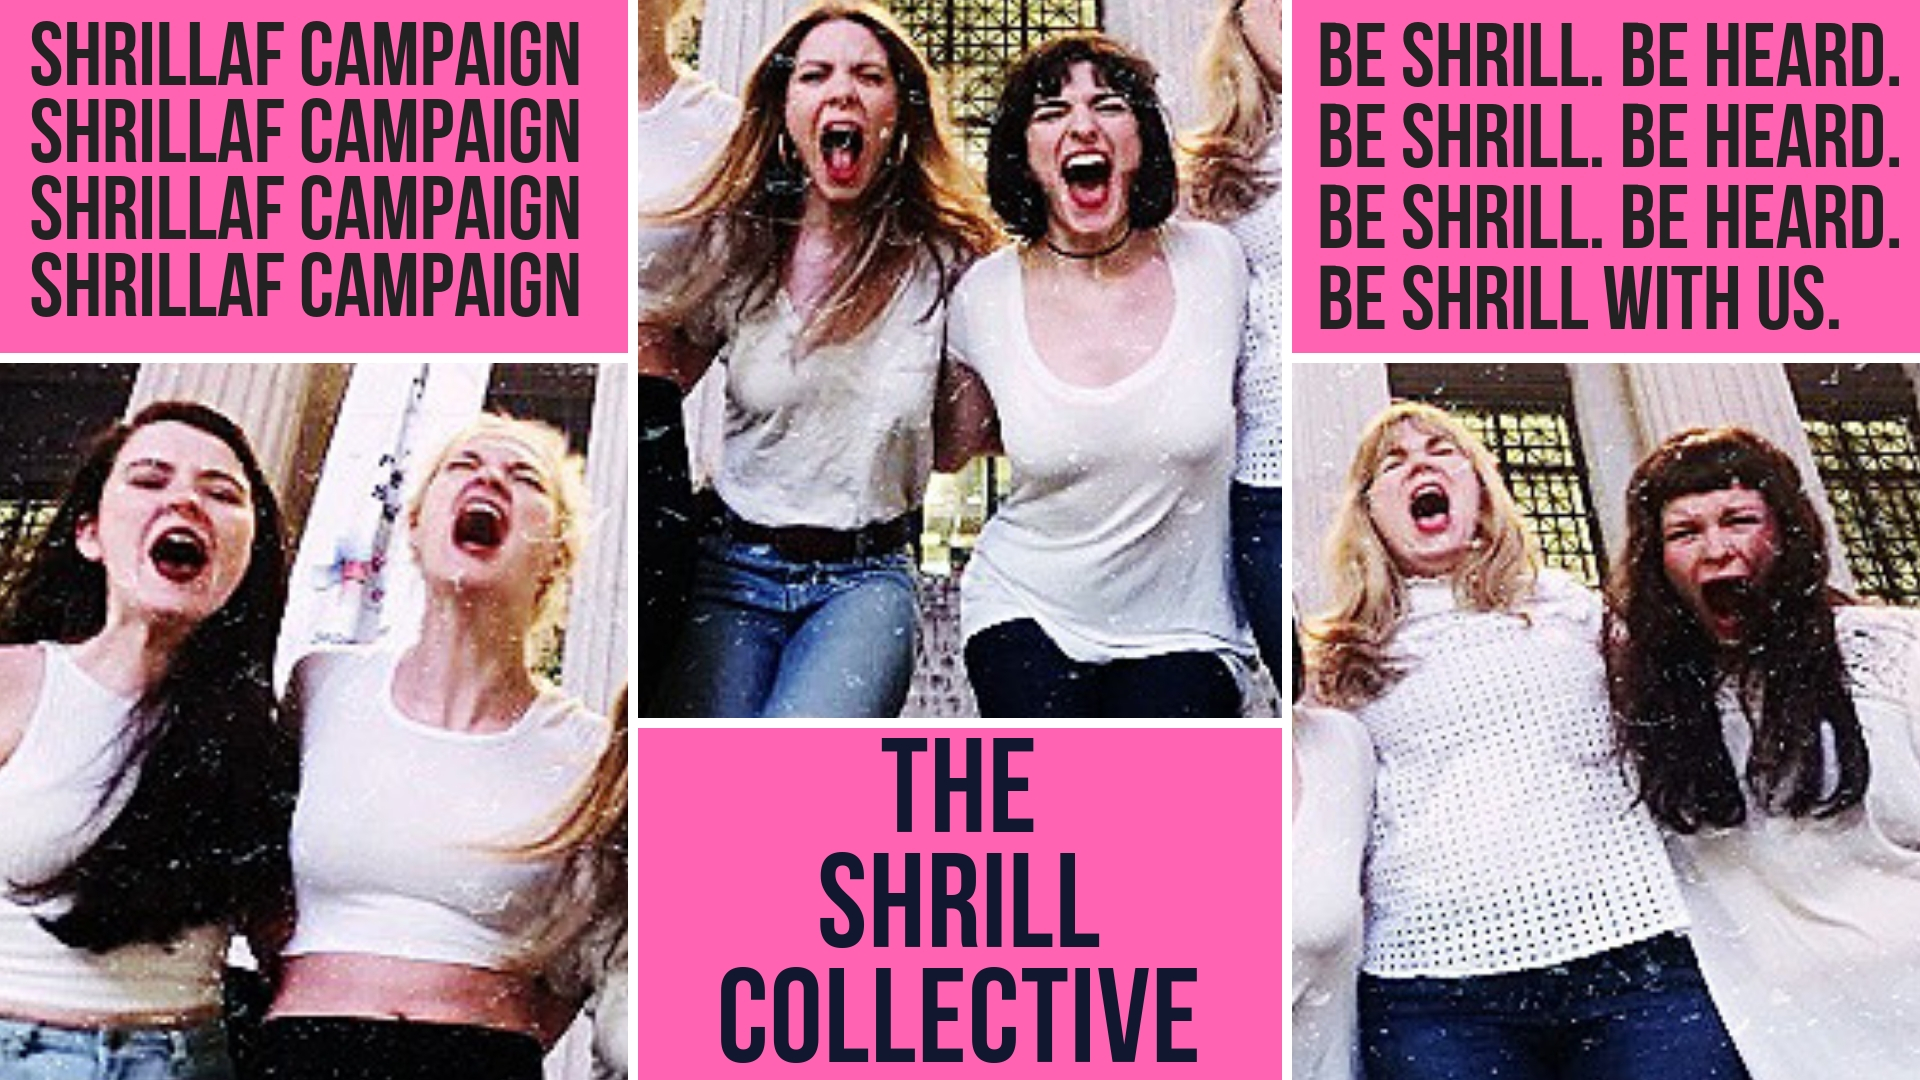 Let's get shrill. - We have launched an Indiegogo campaign to raise funds for our current and future seasons of badass feminist theatre. We want to keep providing platforms for new works, up and coming artists, and support charitable organizations that champion women and the LGBTQ communities... so we need some money!We're fundraising until November 5th. We'd love your support.